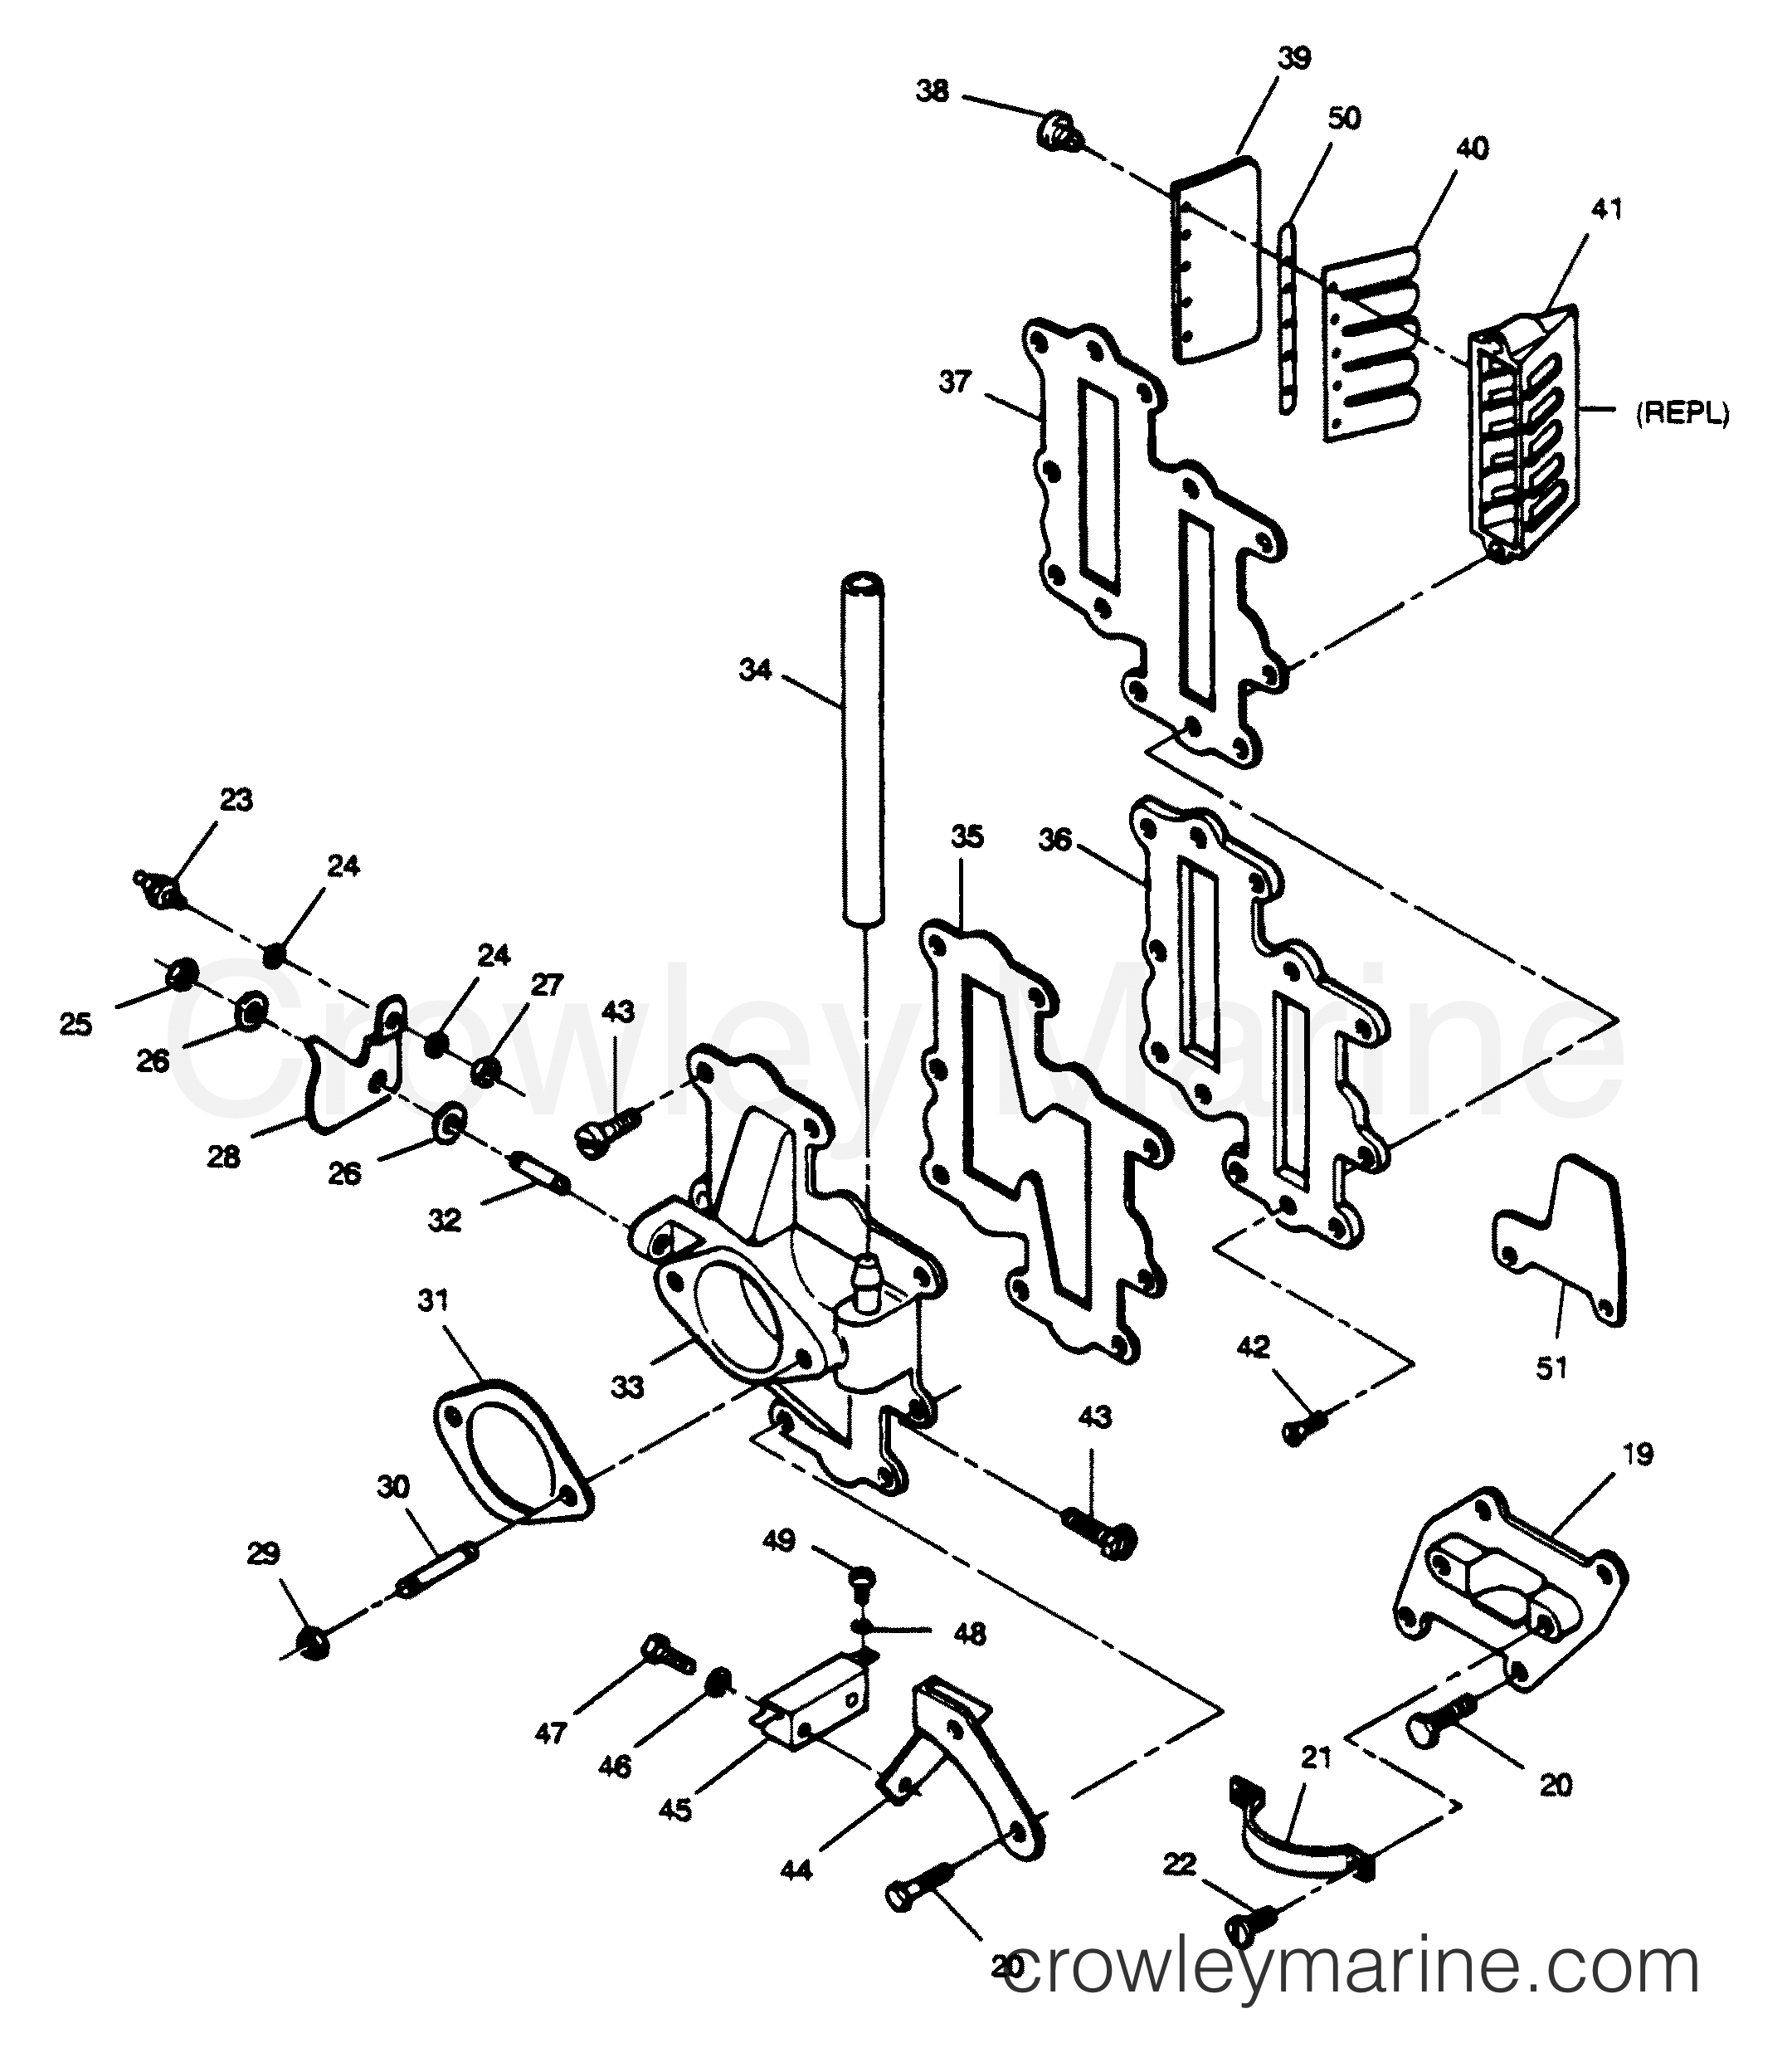 Adapter And Reed Plate